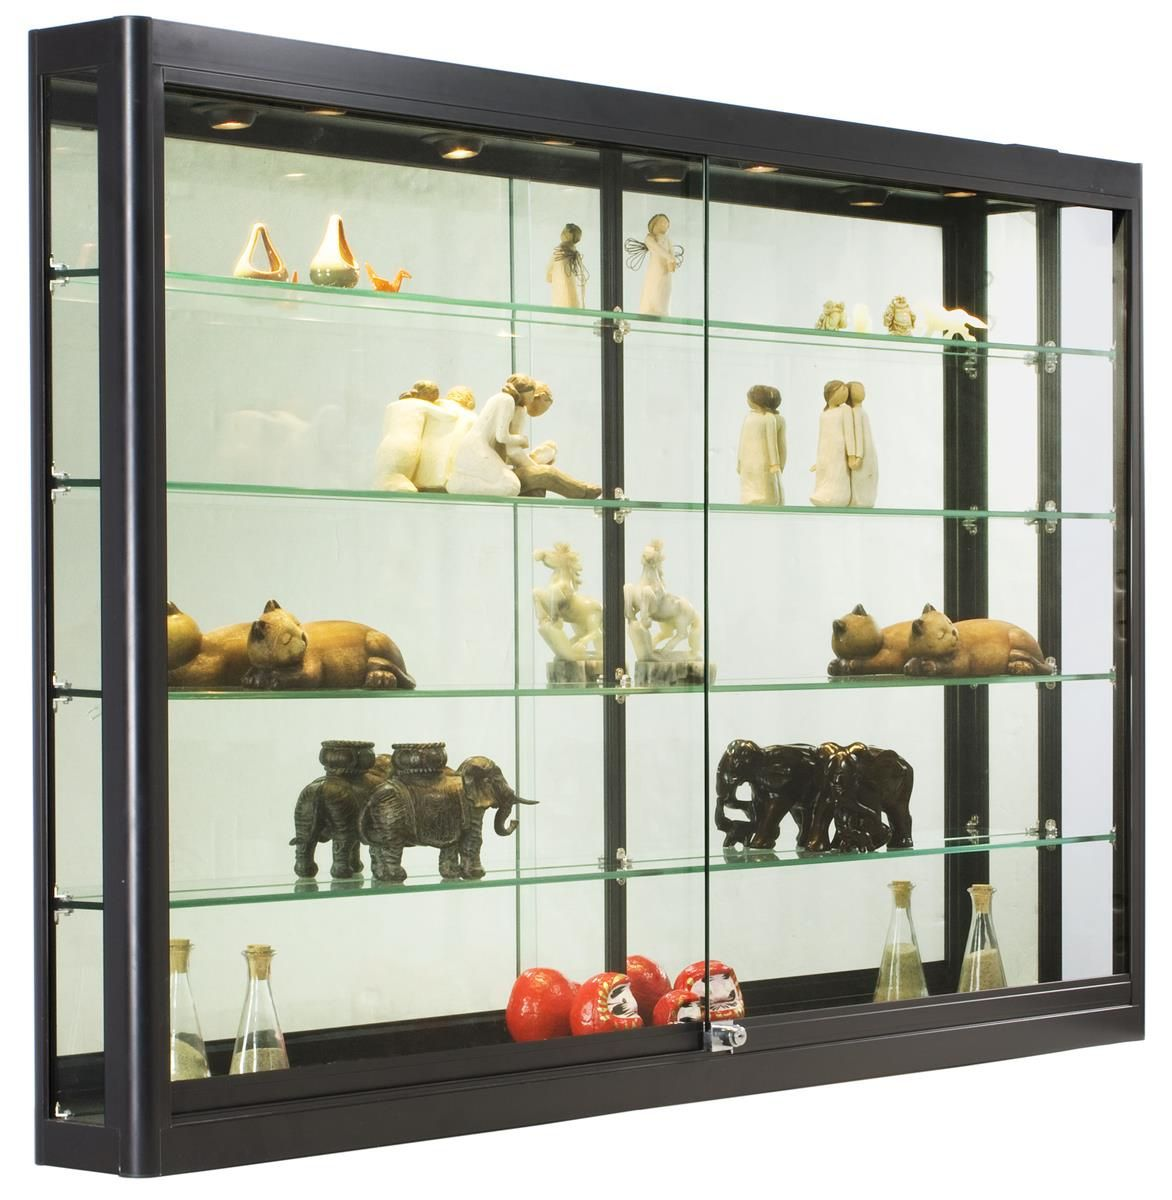 Pin By Neby On House Plans Ideas Display Display Case Cabinet